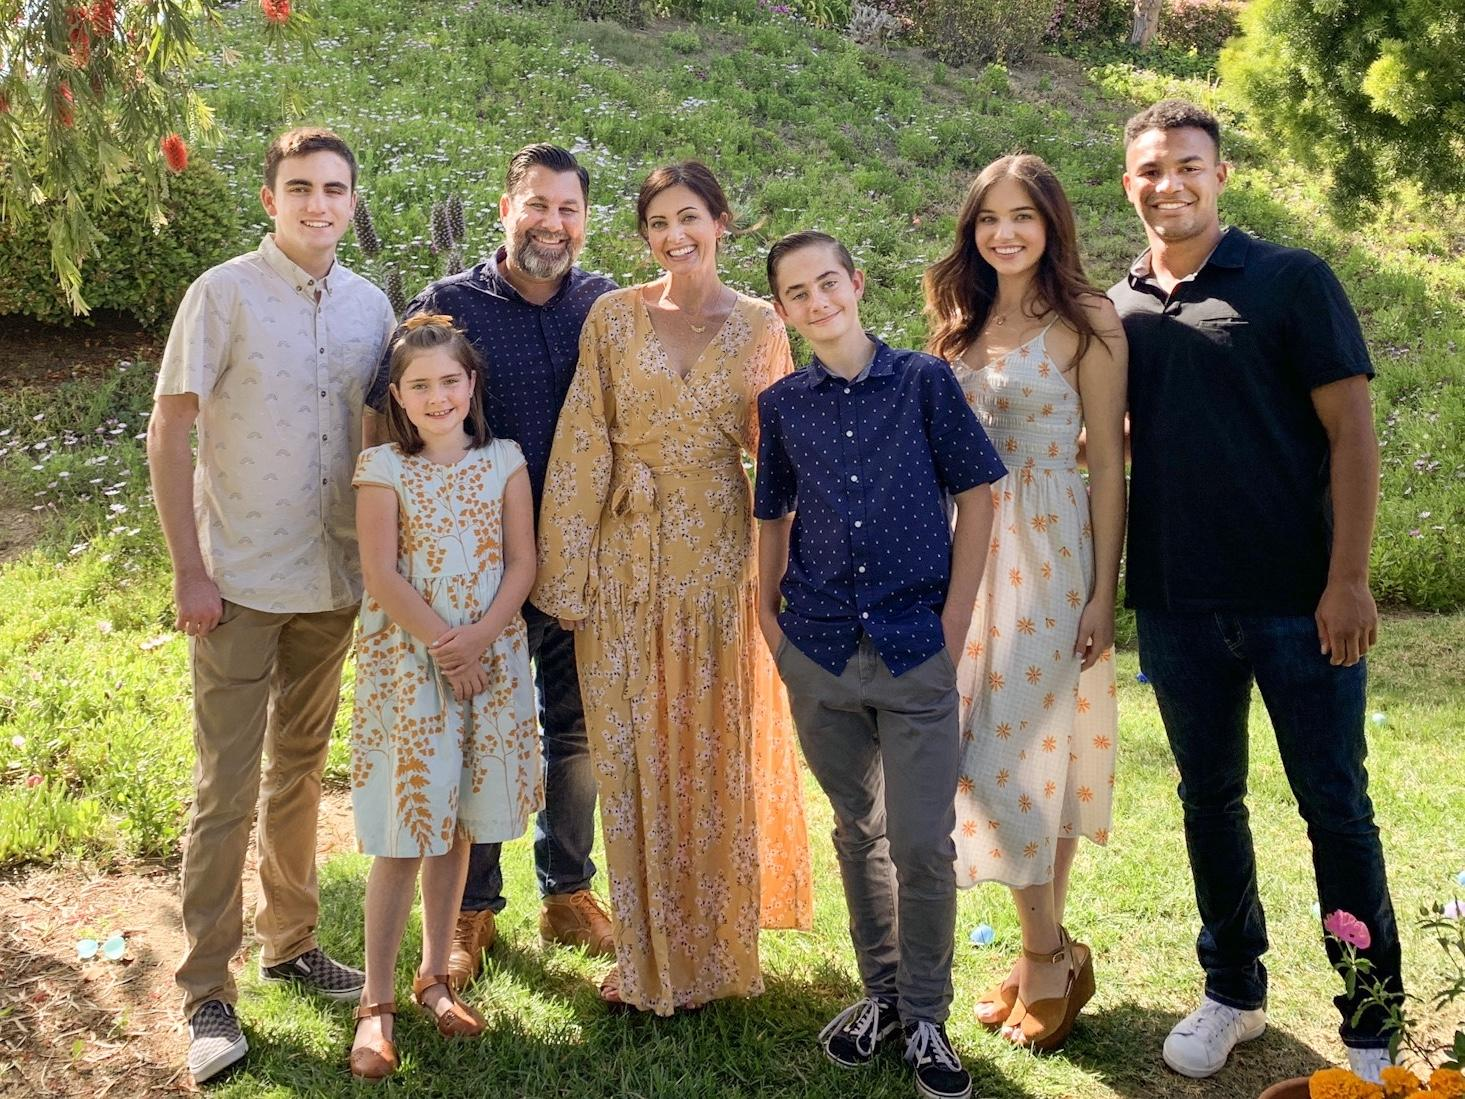 Garrett Delph - the Founder & CEO of ShootDotEdit - with his wife and four children